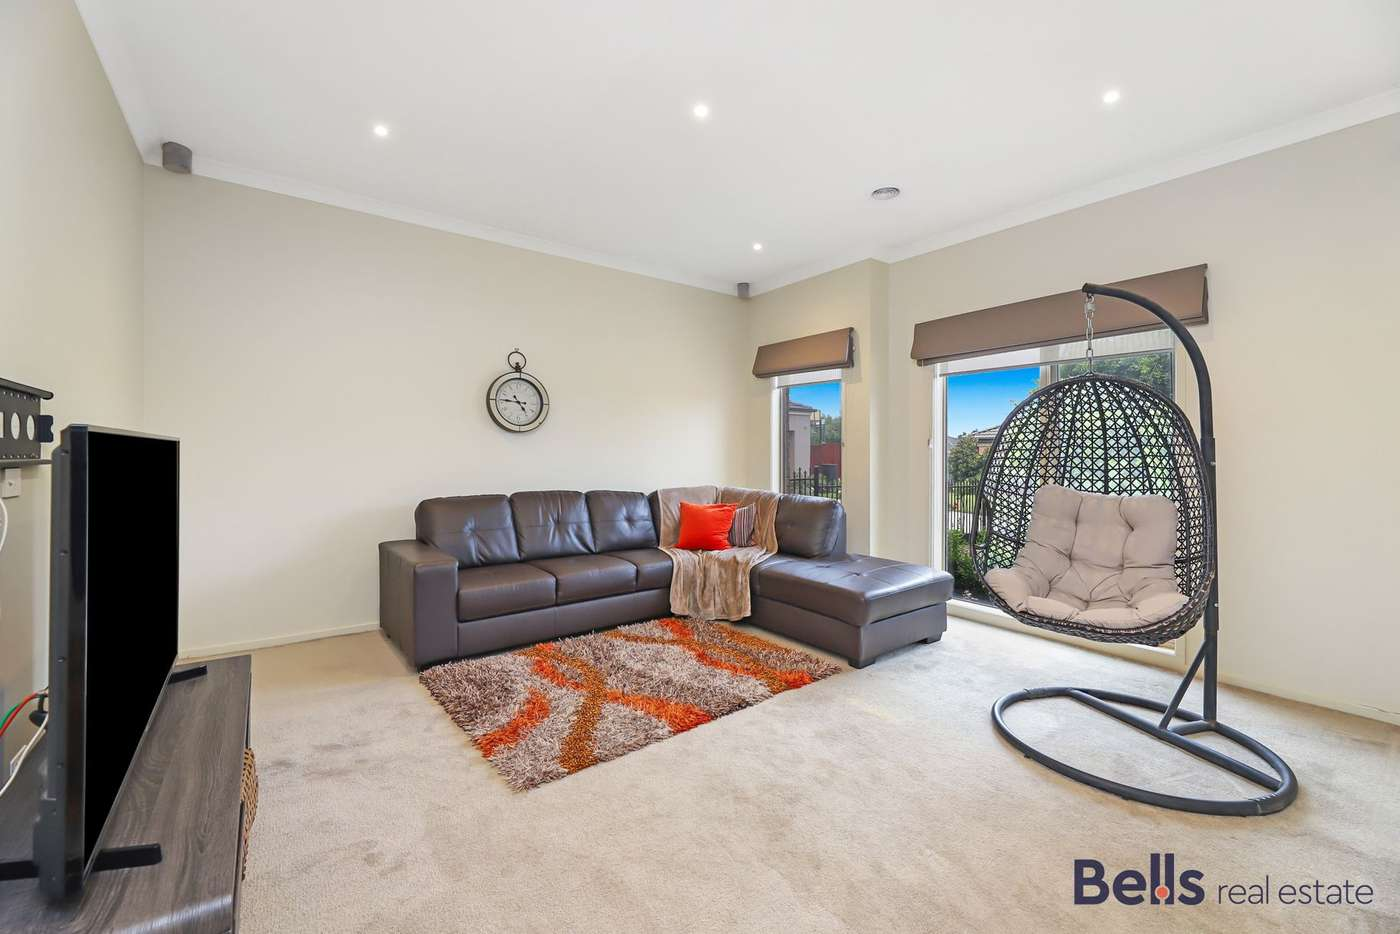 Sixth view of Homely house listing, 36 Goodenia Way, Caroline Springs VIC 3023